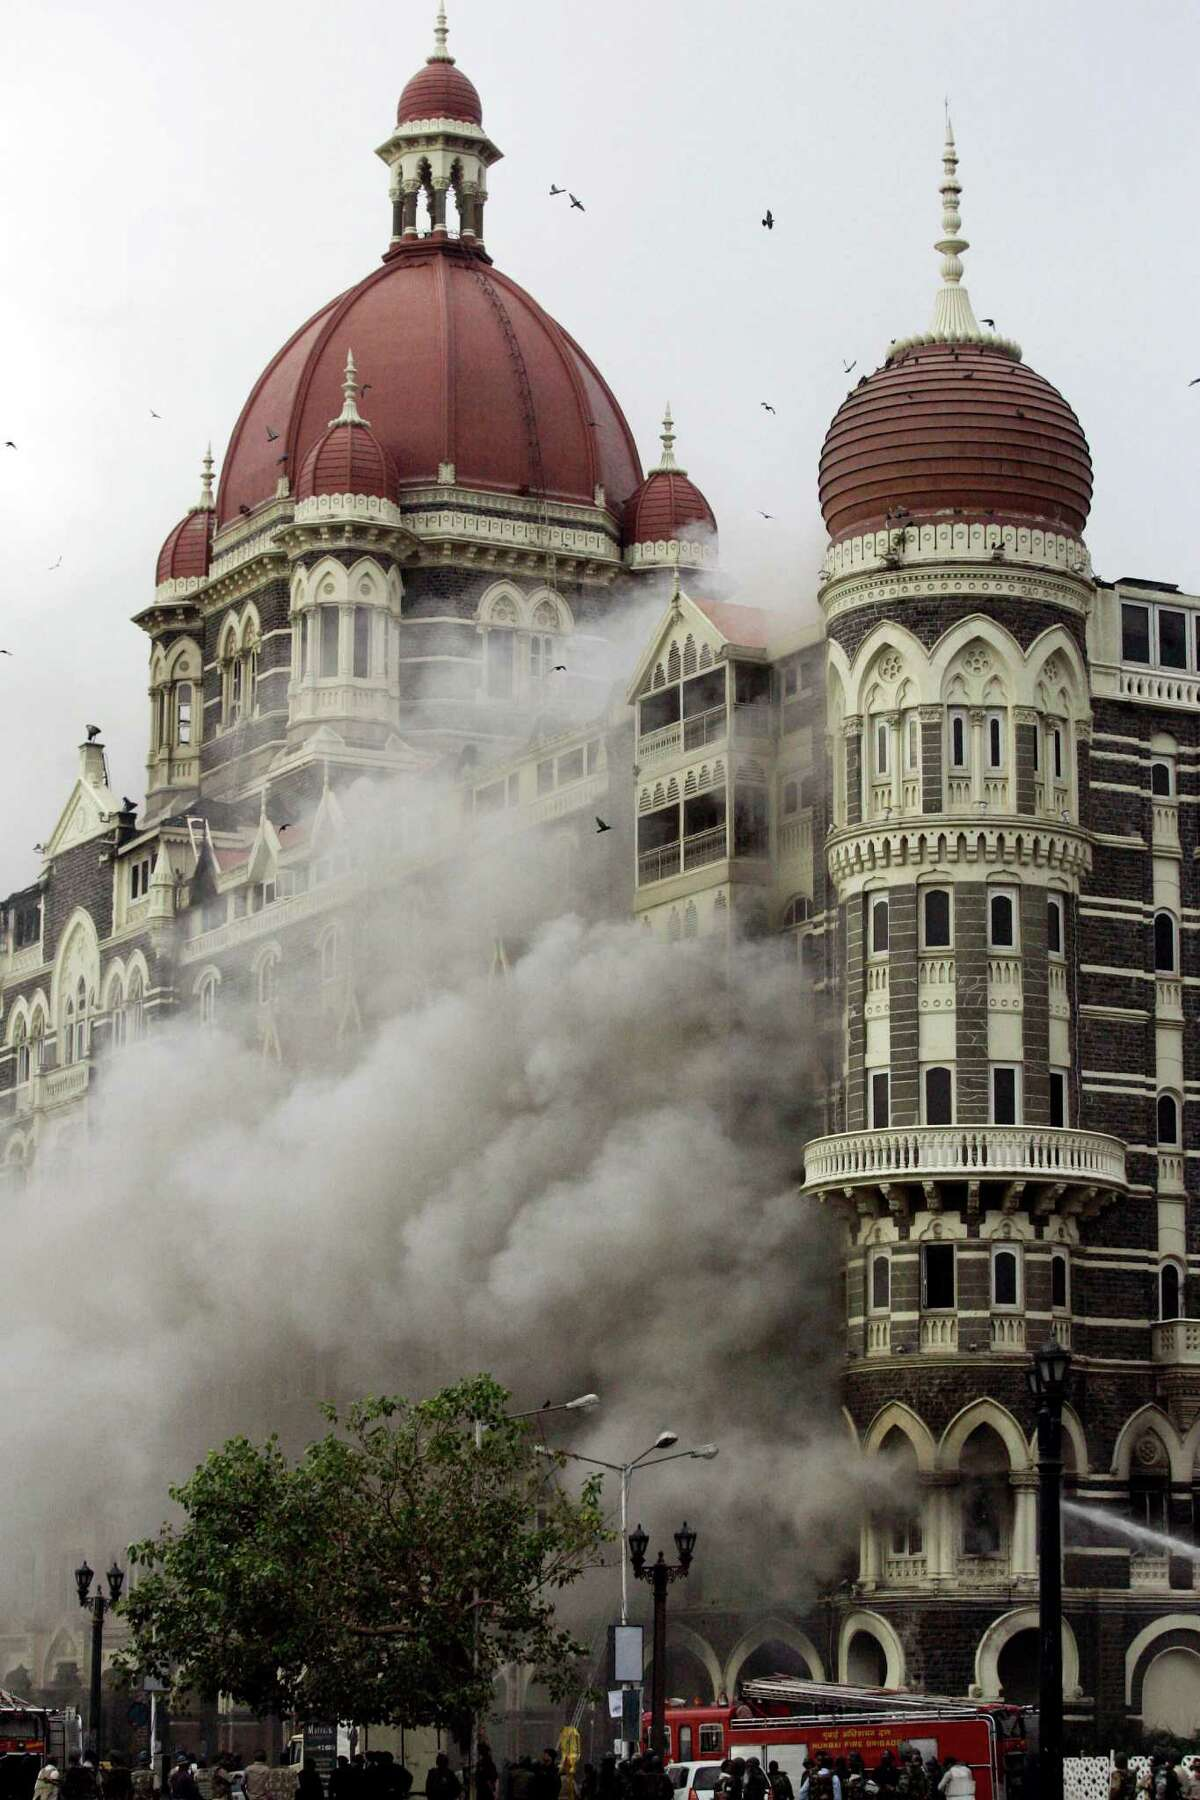 American David Headley, 50, pleaded guilty in March 2013 to laying the groundwork for the 2008 Mumbai Attacks and preparing a possible attack against Denmark. Since his guilty plea, Headley has been working with Indian authorities to identify a possible link with Pakistan's intelligence branch and the terrorist group Lashkar-e-Taiba. The attacks in India killed more than 160 people. Related: India ties Pakistani spies to 2008 Mumbai attacks